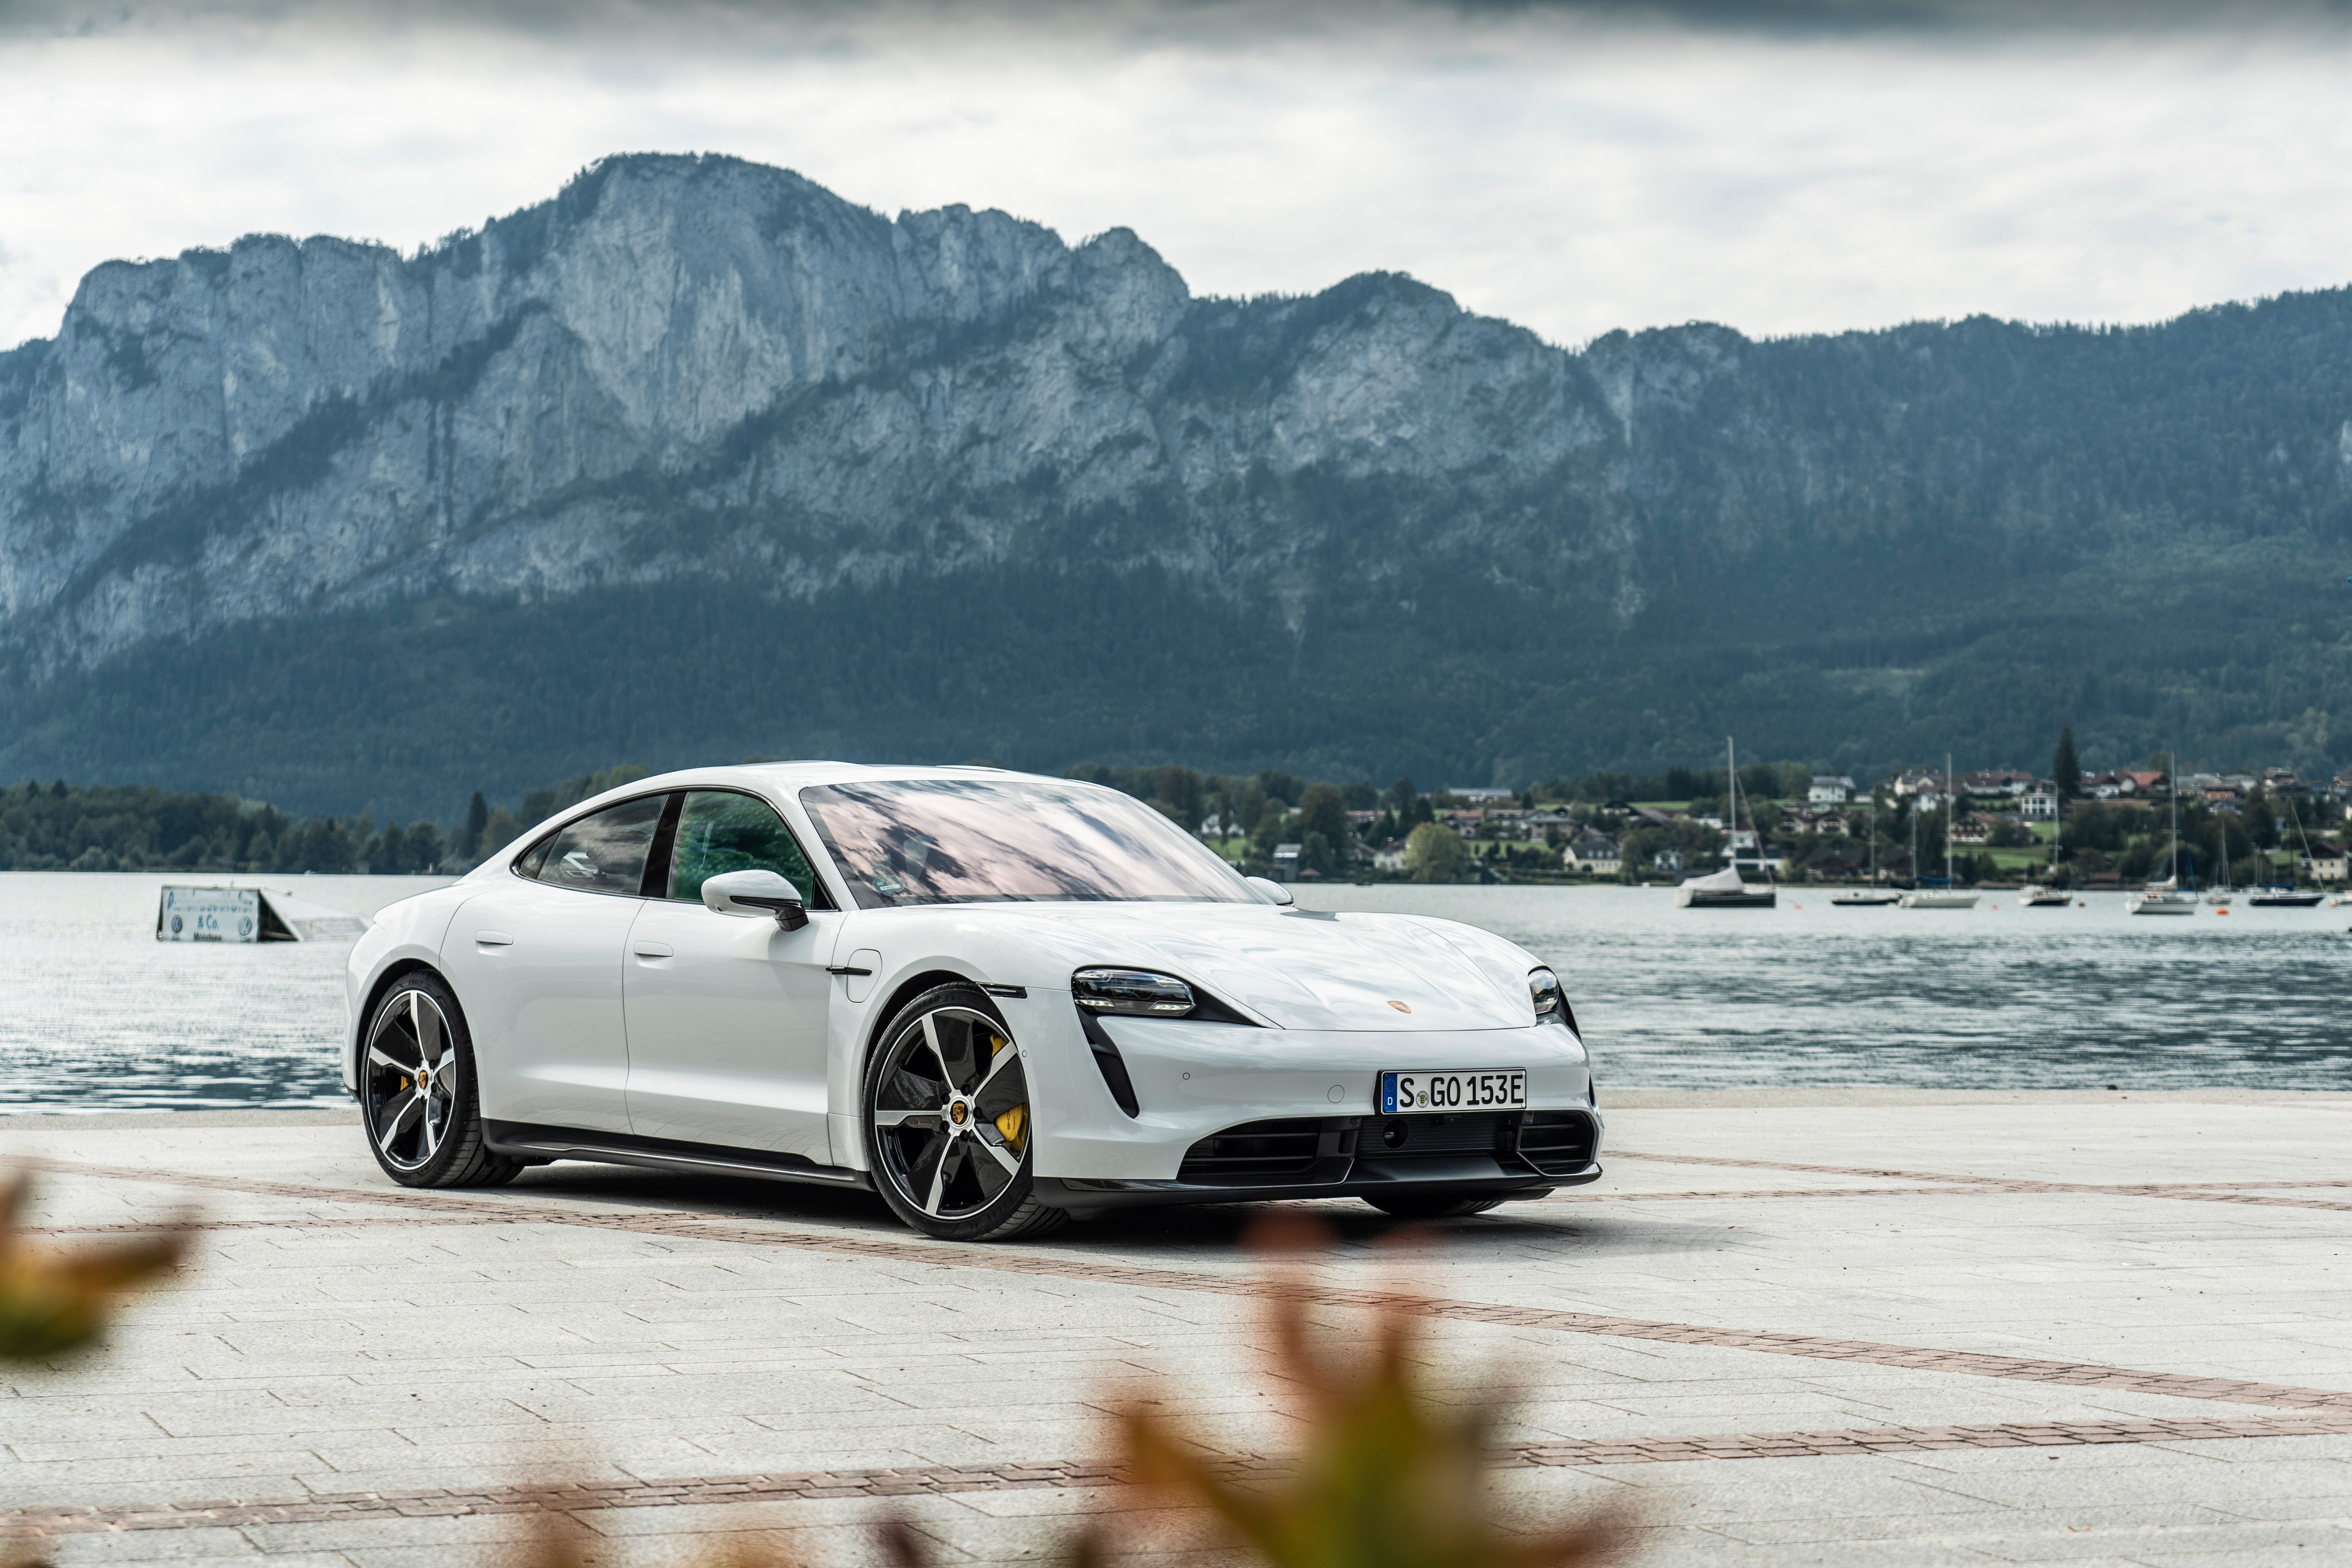 2021 Porsche Taycan Review Pricing And Specs